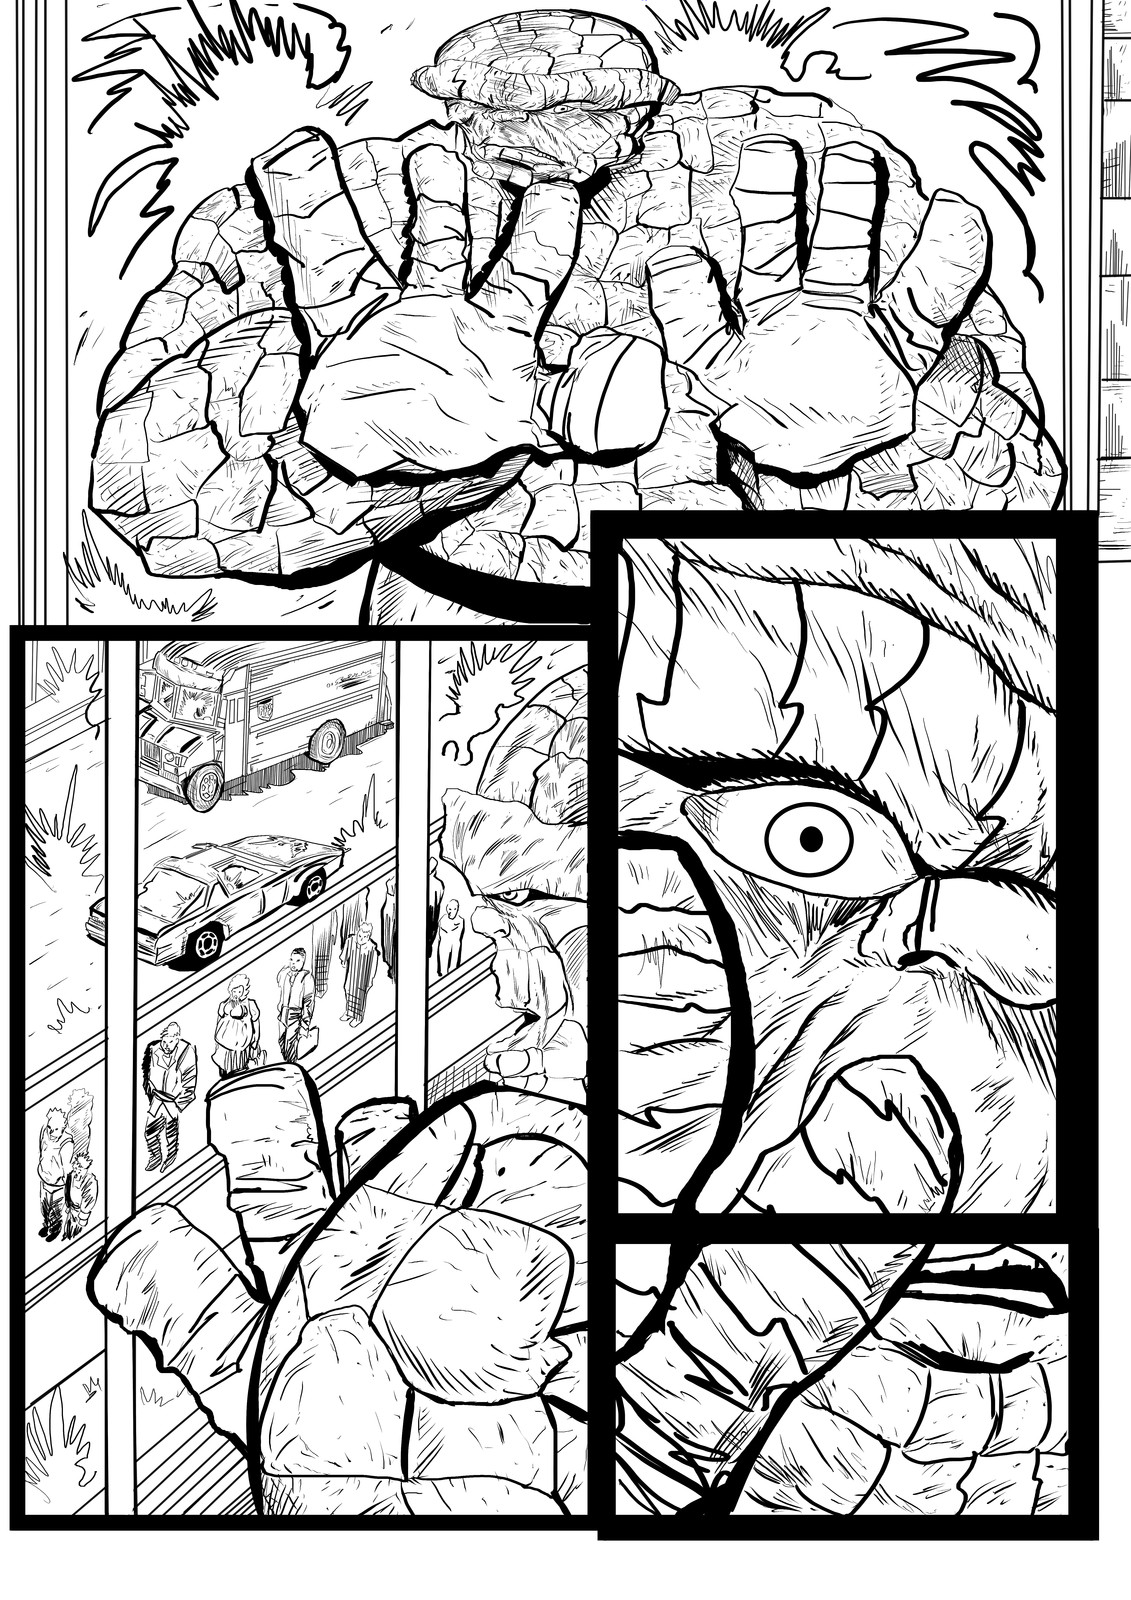 Fantastic Four Sequential Sample artwork page 1 by Brian Robinson